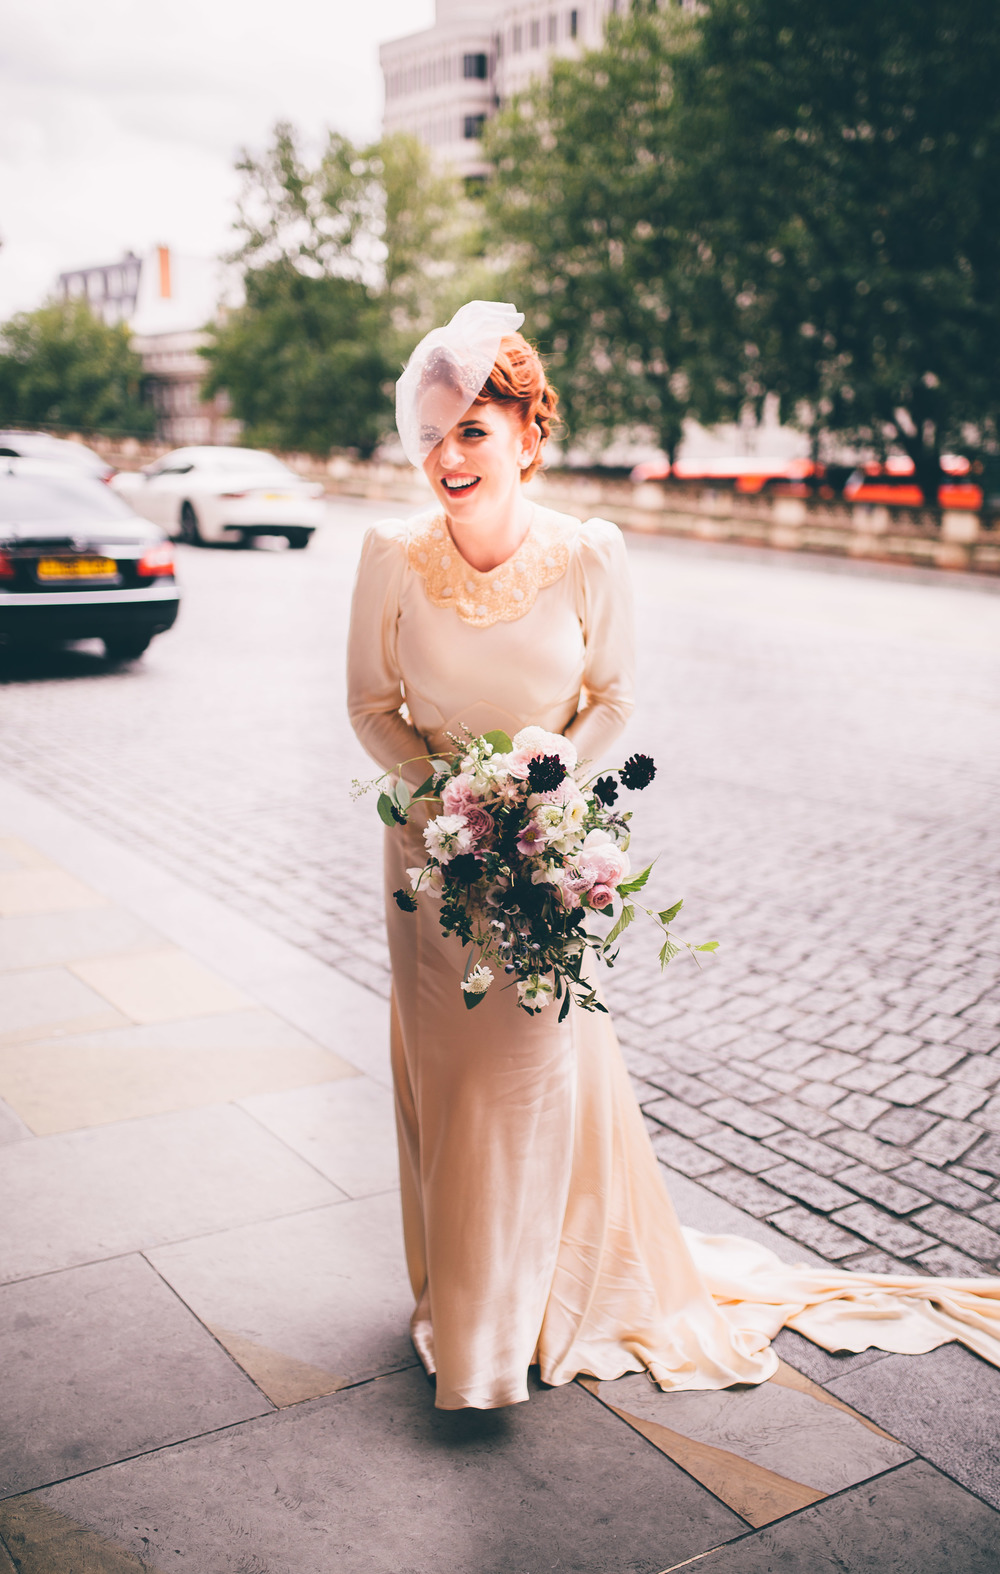 londonweddingpost (2 of 2).jpg